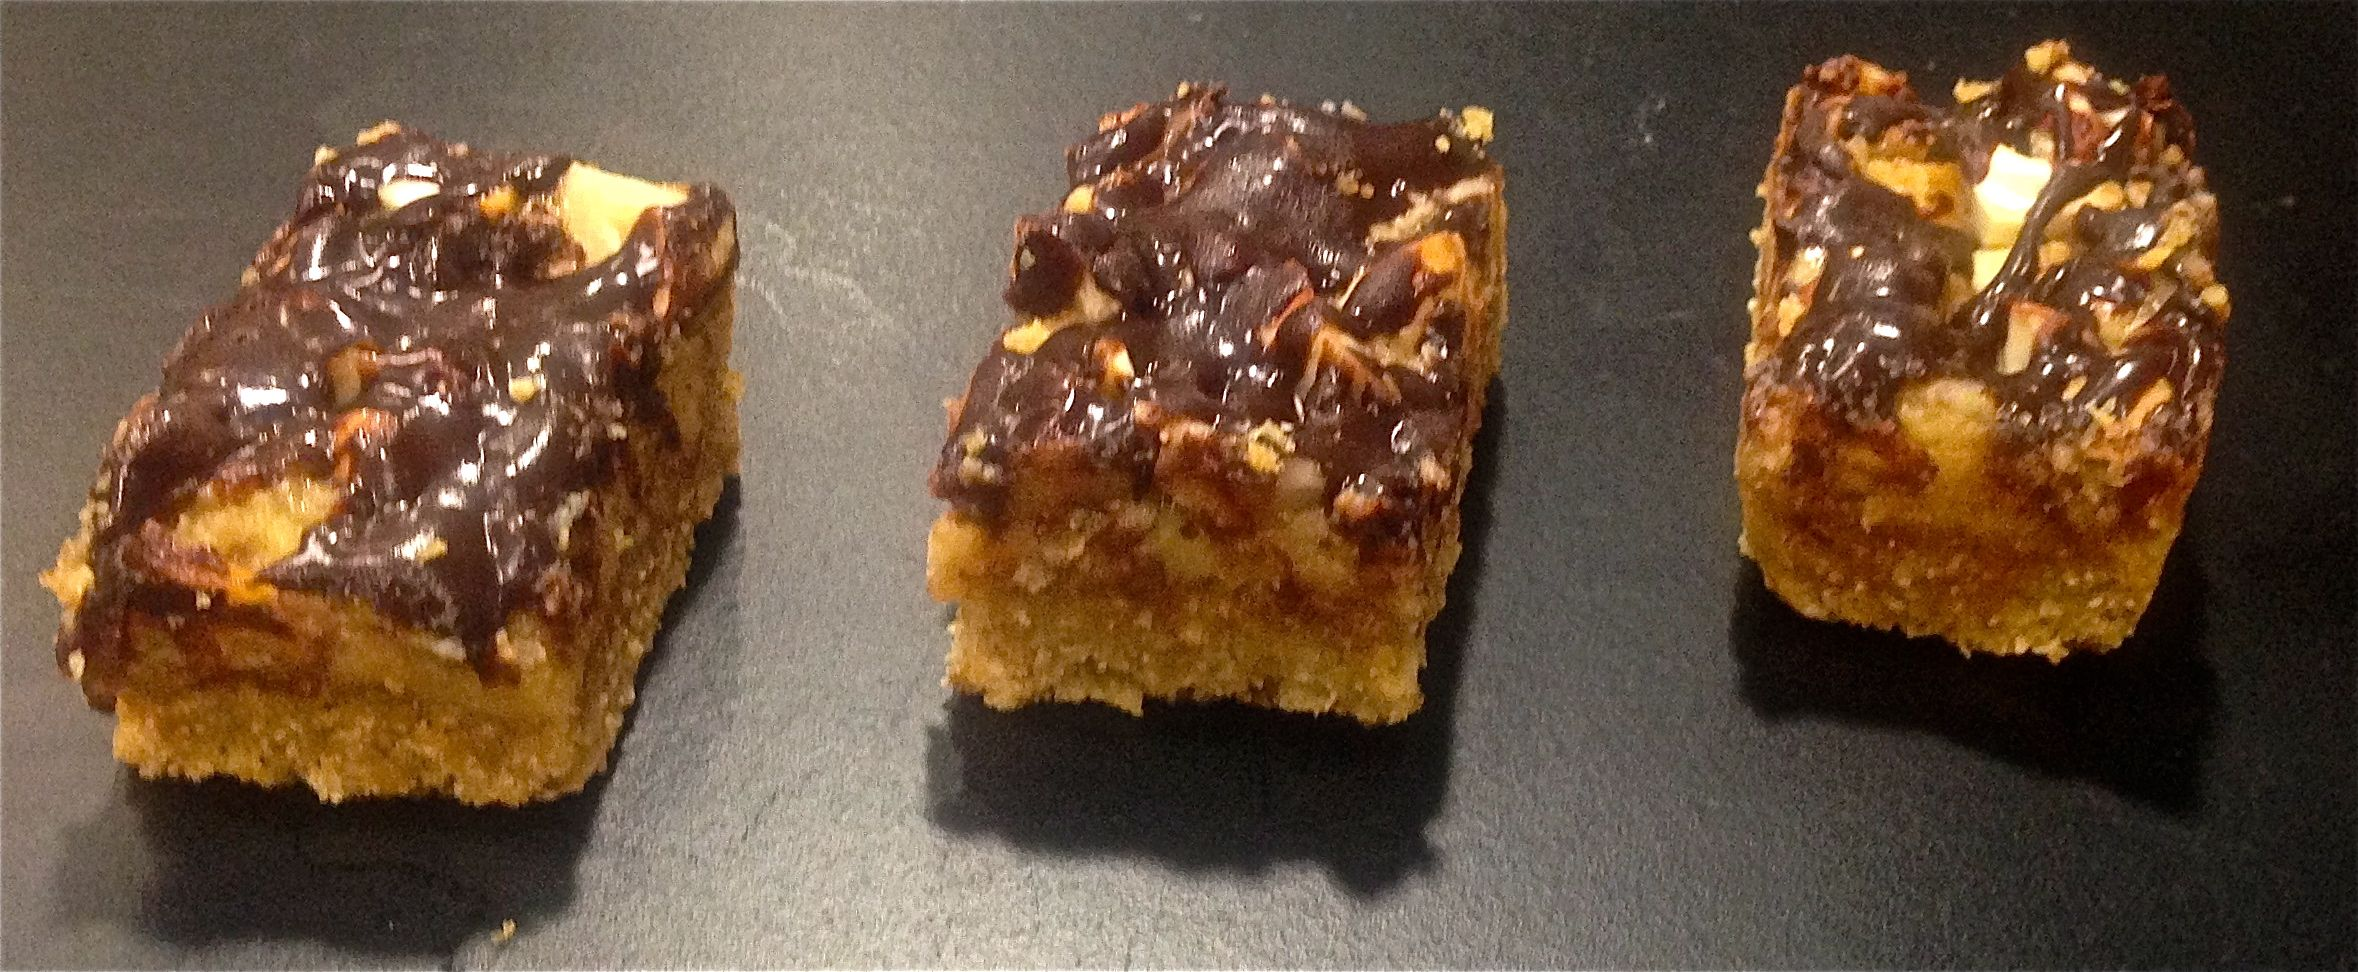 Nut Caramel and Chocolate Slice – Sweet Tooth Experiments